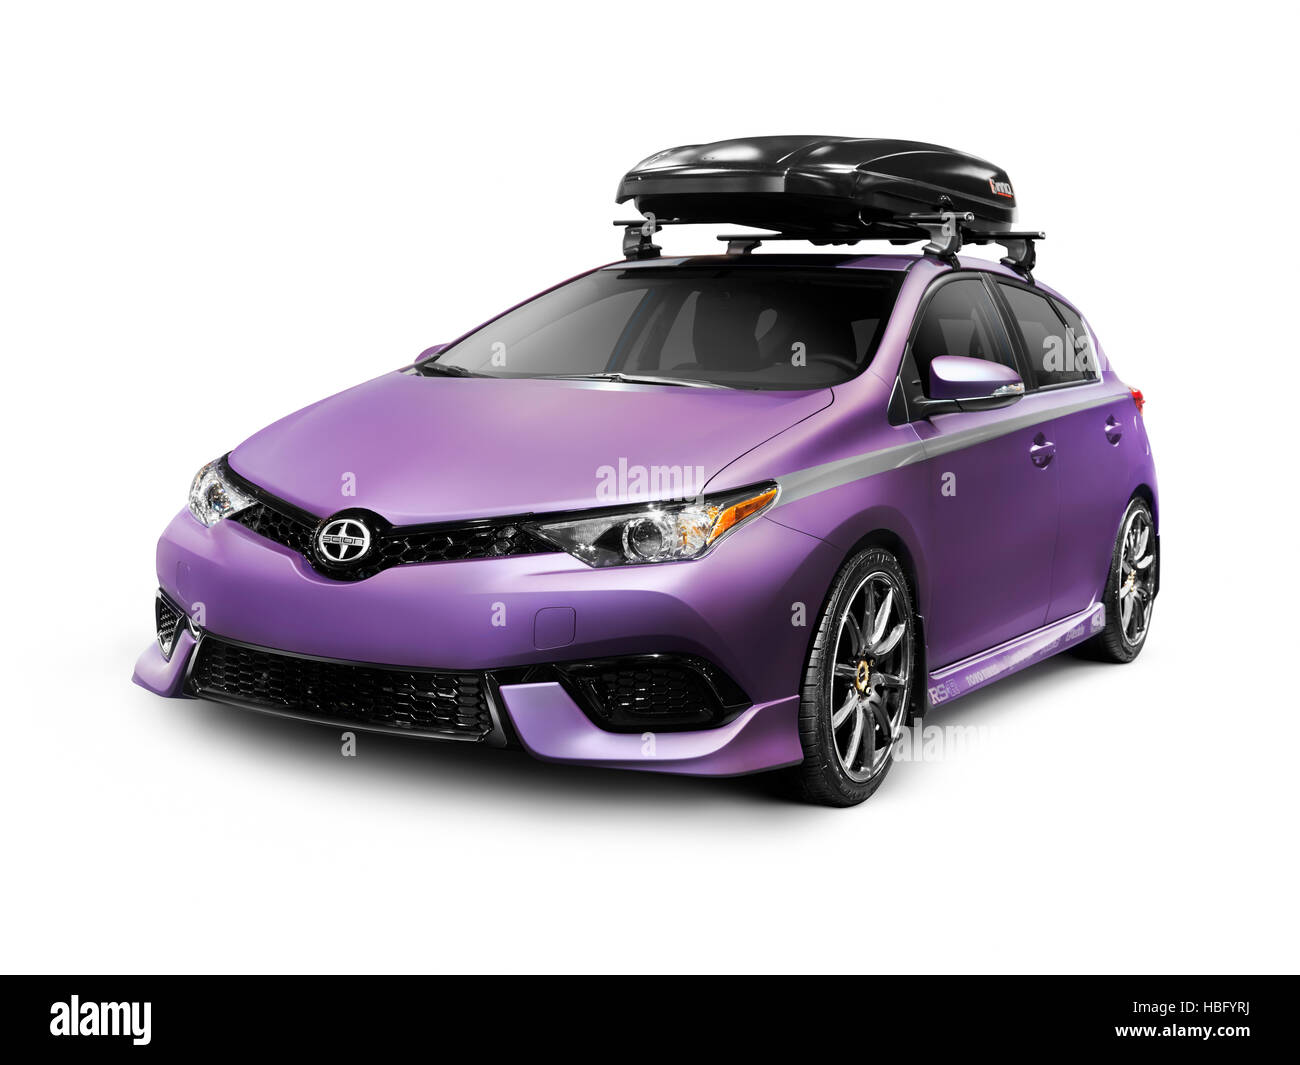 purple 2016 scion im affordable small city car with roof rack cargo stock photo 127584902 alamy. Black Bedroom Furniture Sets. Home Design Ideas